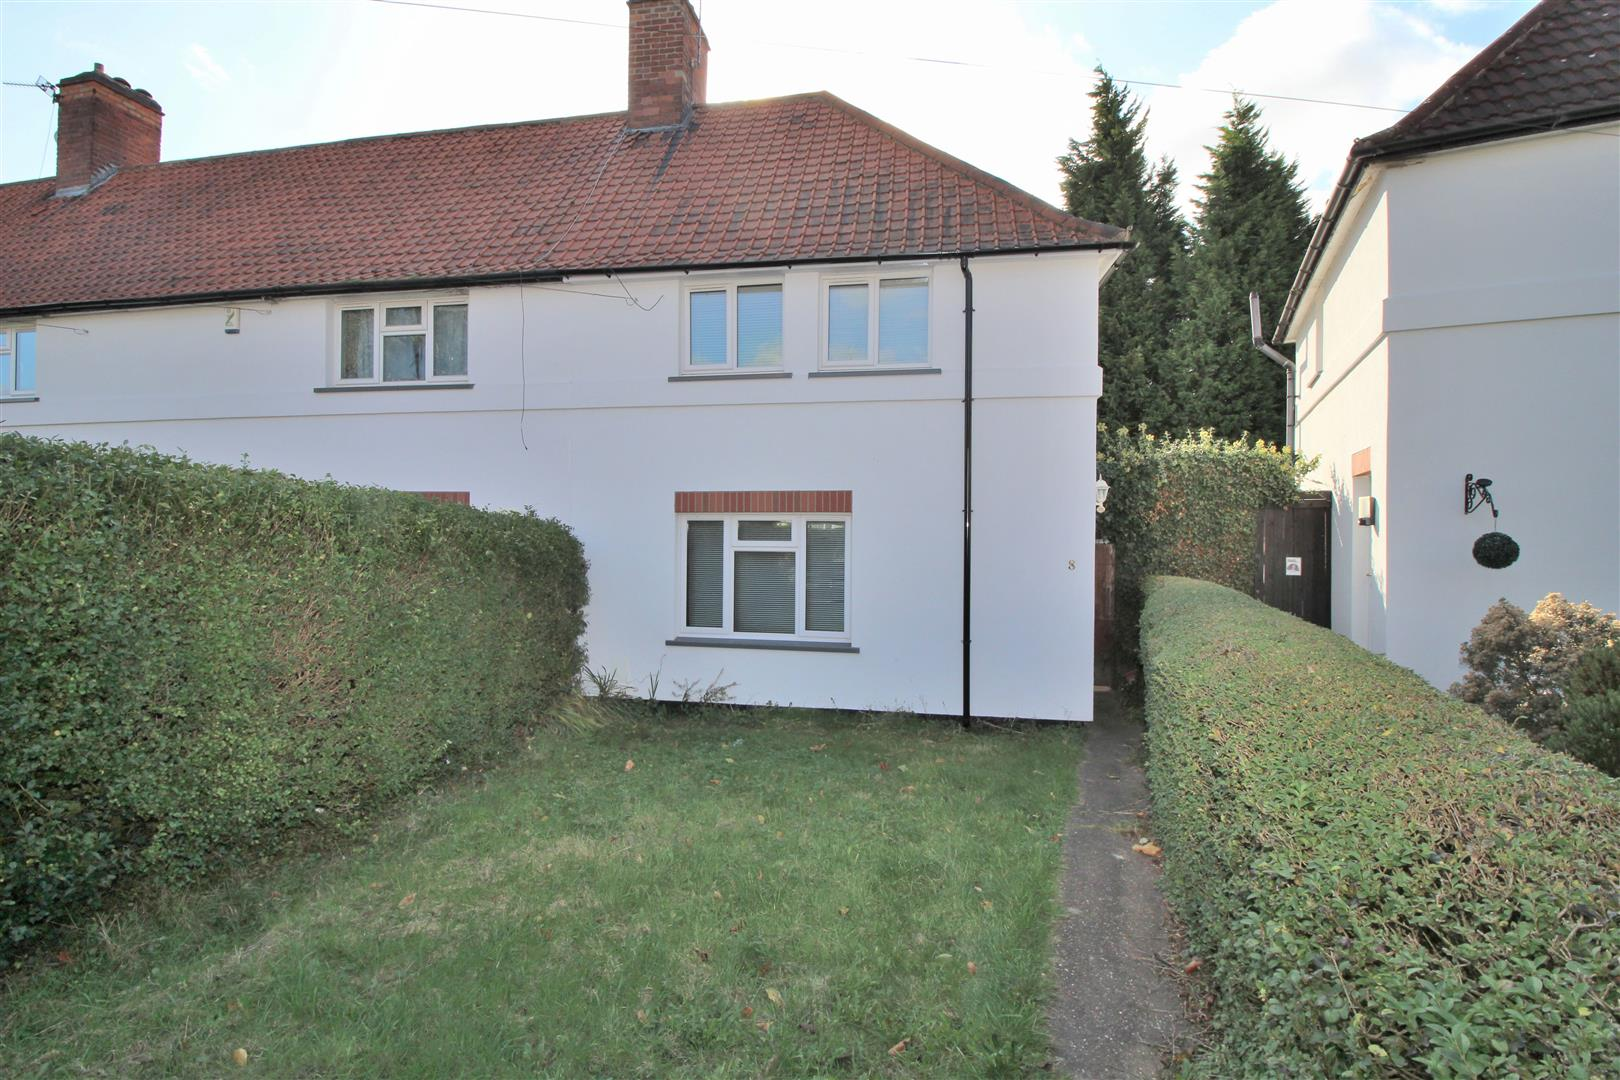 3 Bedrooms End Of Terrace House for sale in Romilay Close, Lenton Abbey